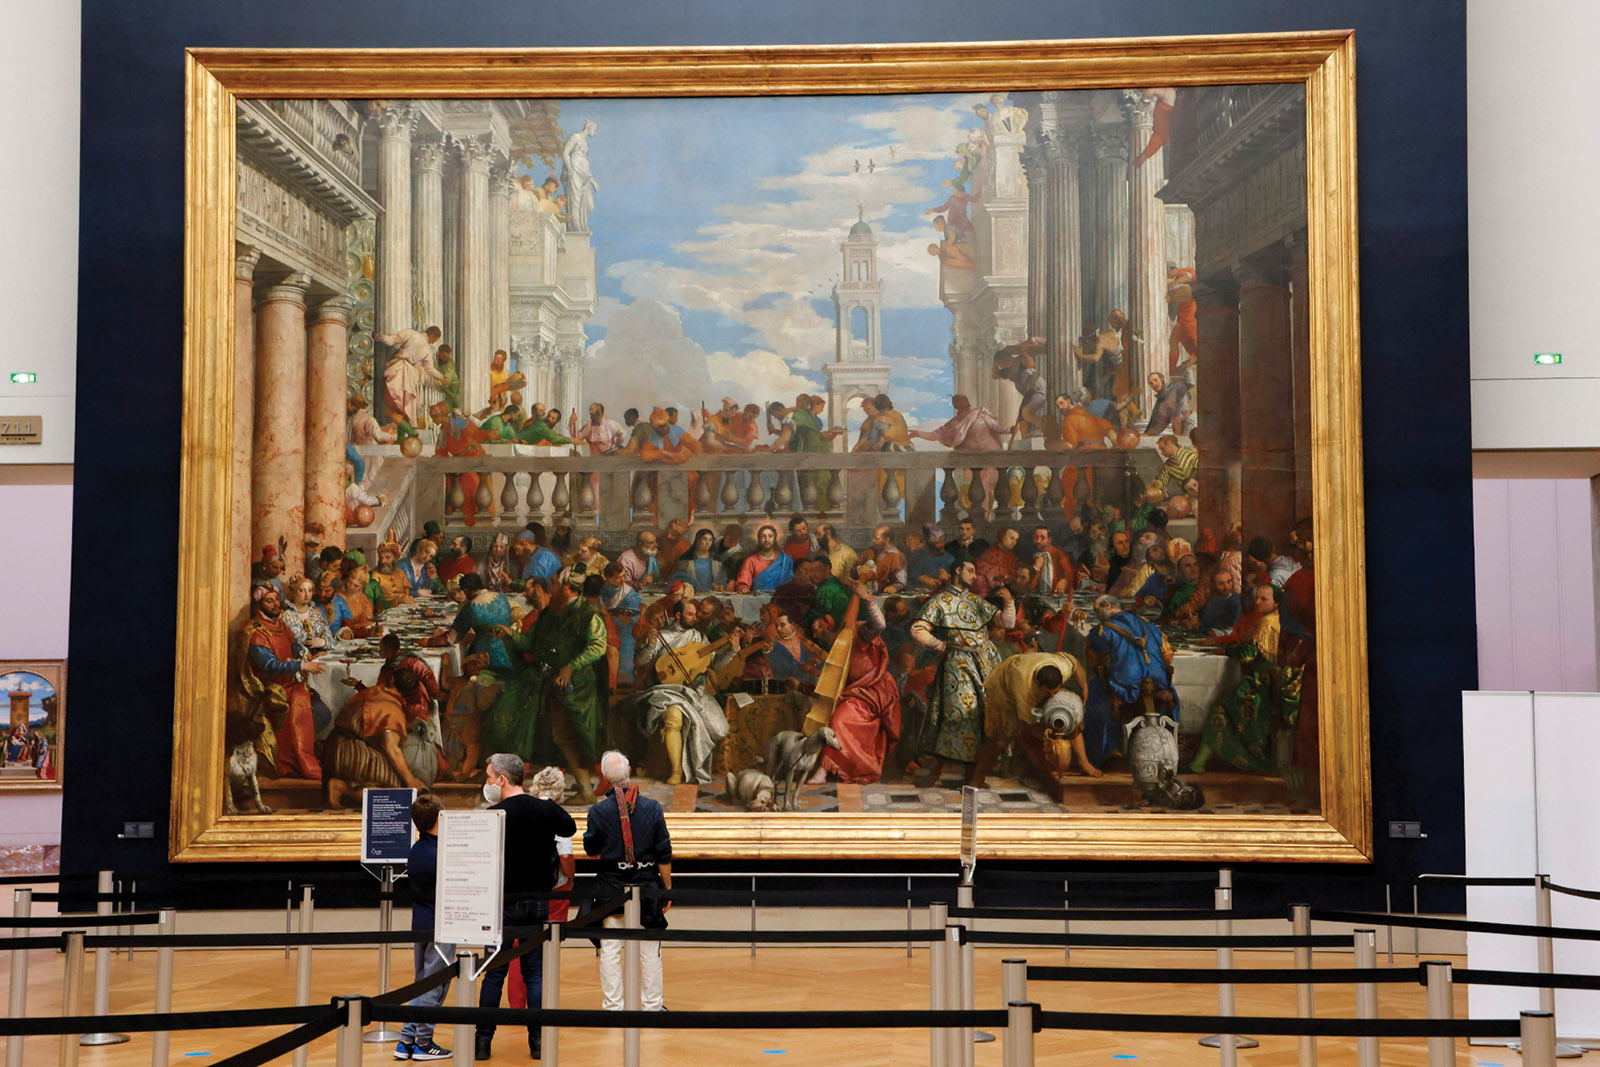 Paolo Veronese's The Wedding Feast at Cana in the Louvre